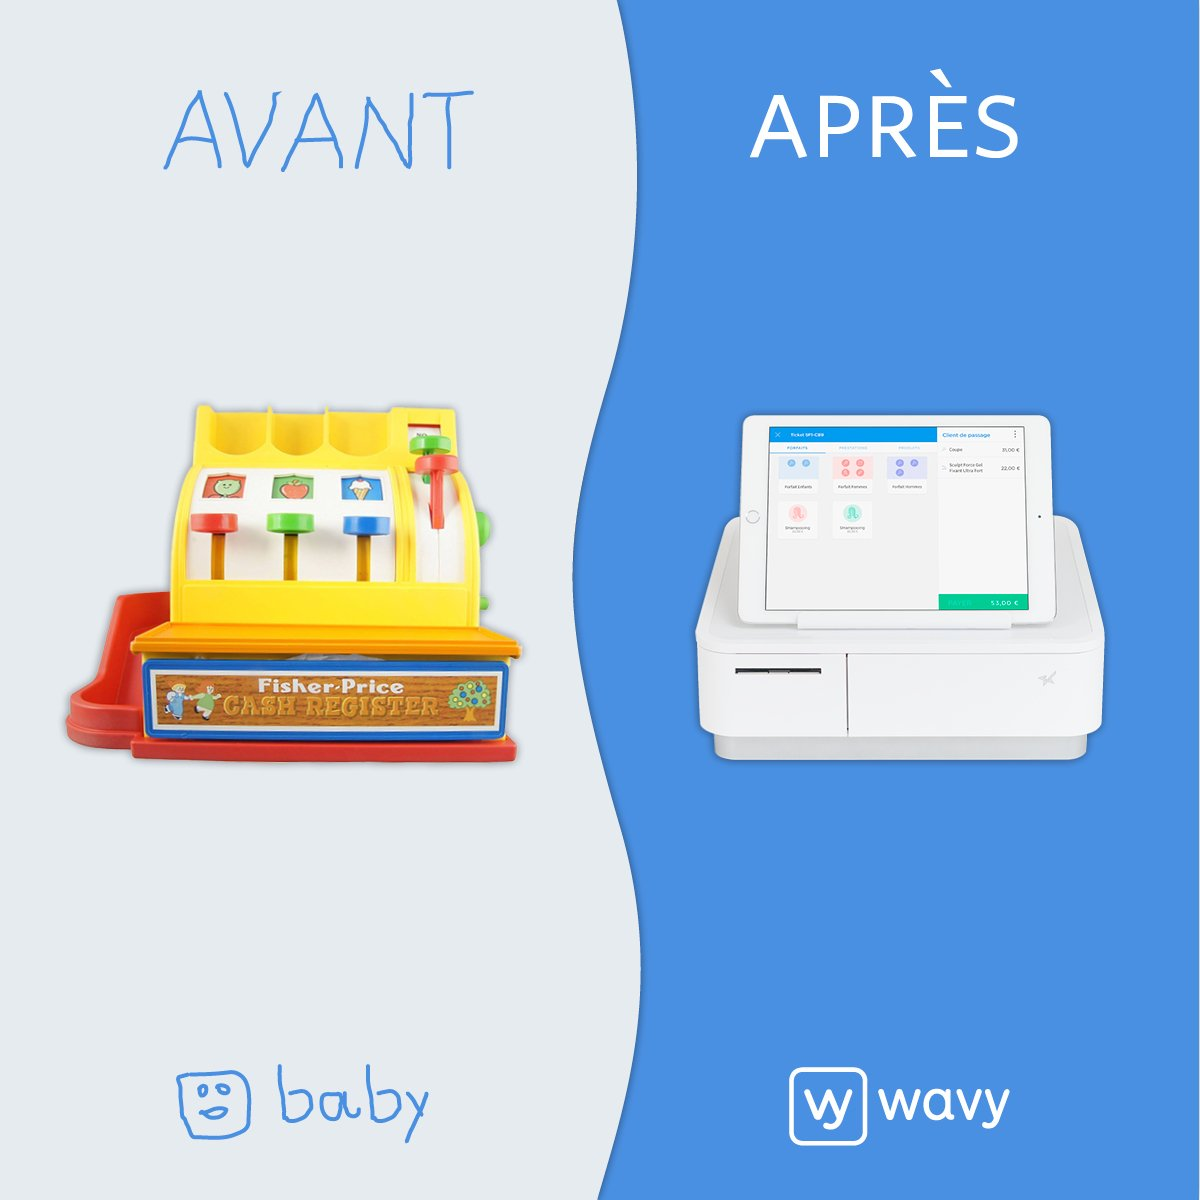 Les rêves d'enfants devenus grands 😉 #app #startup #digital #transfonum #lol ➡ https://t.co/DGmhqLeouN https://t.co/wGbVSUf4pJ